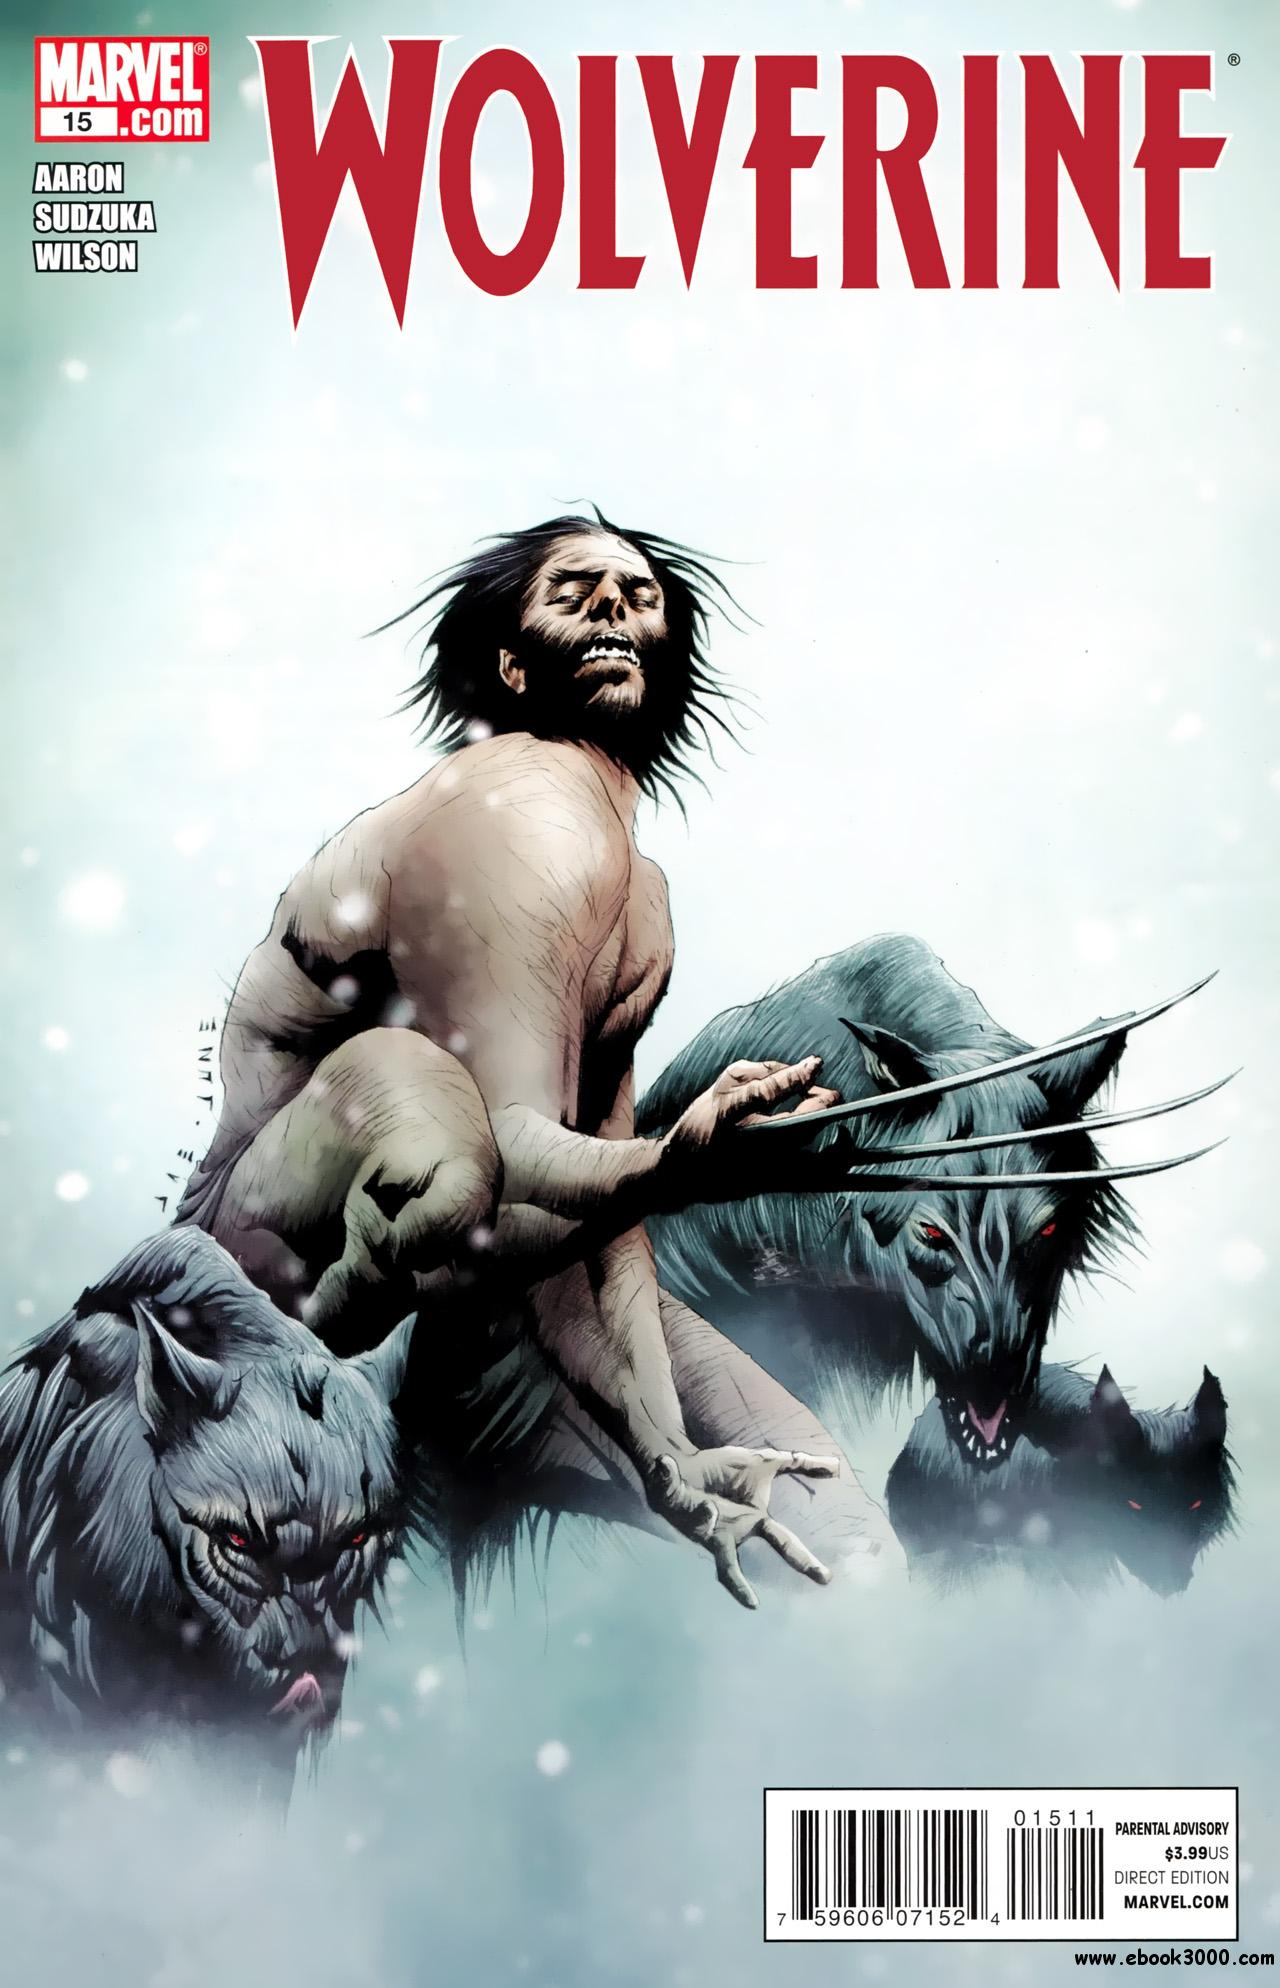 Wolverine #15 (2011) free download